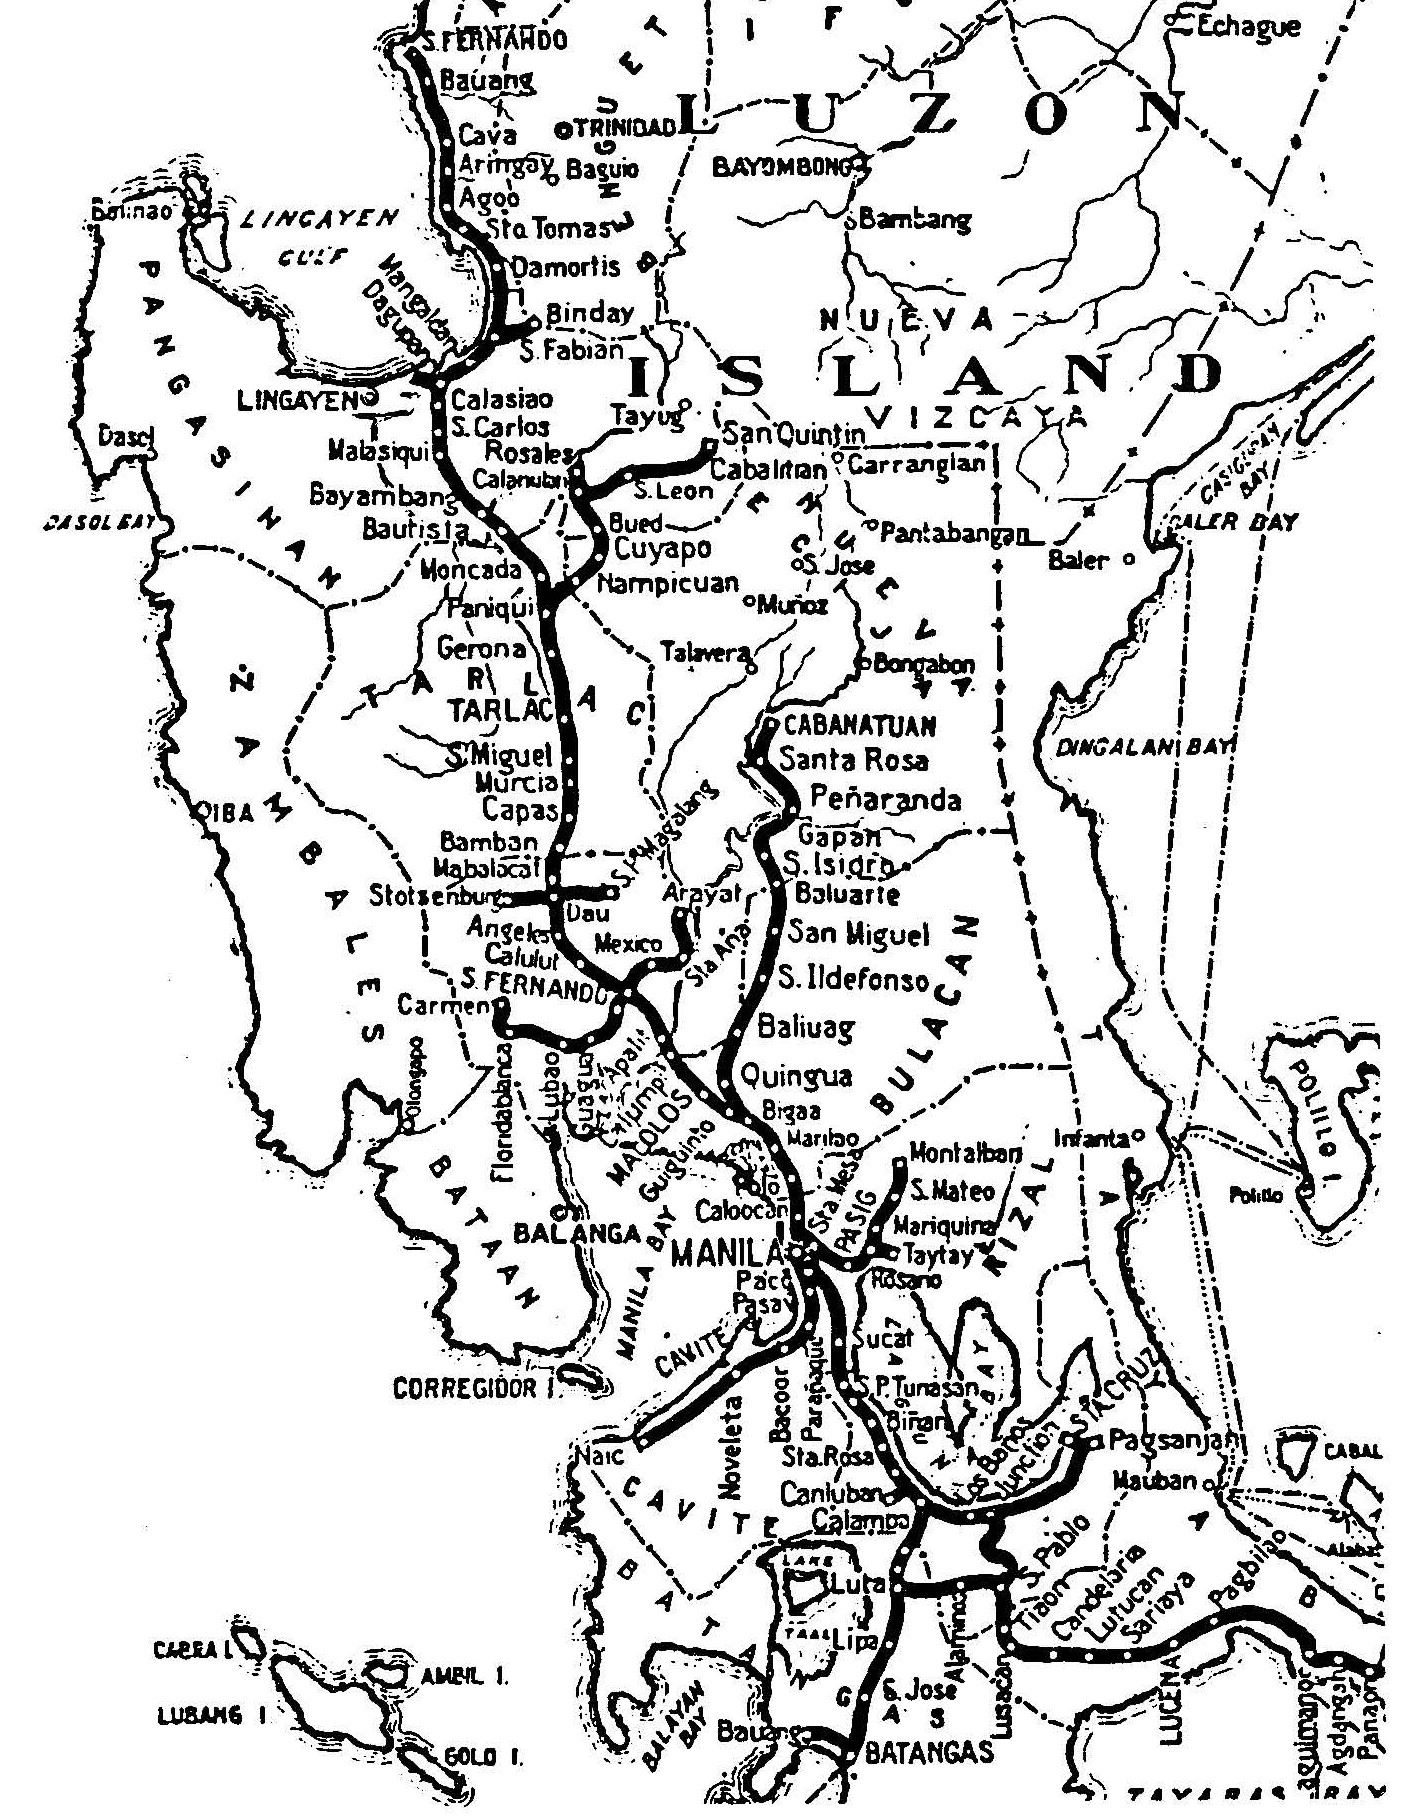 railways of old in manila and rizal caught up in traffic Mekong River Map close up